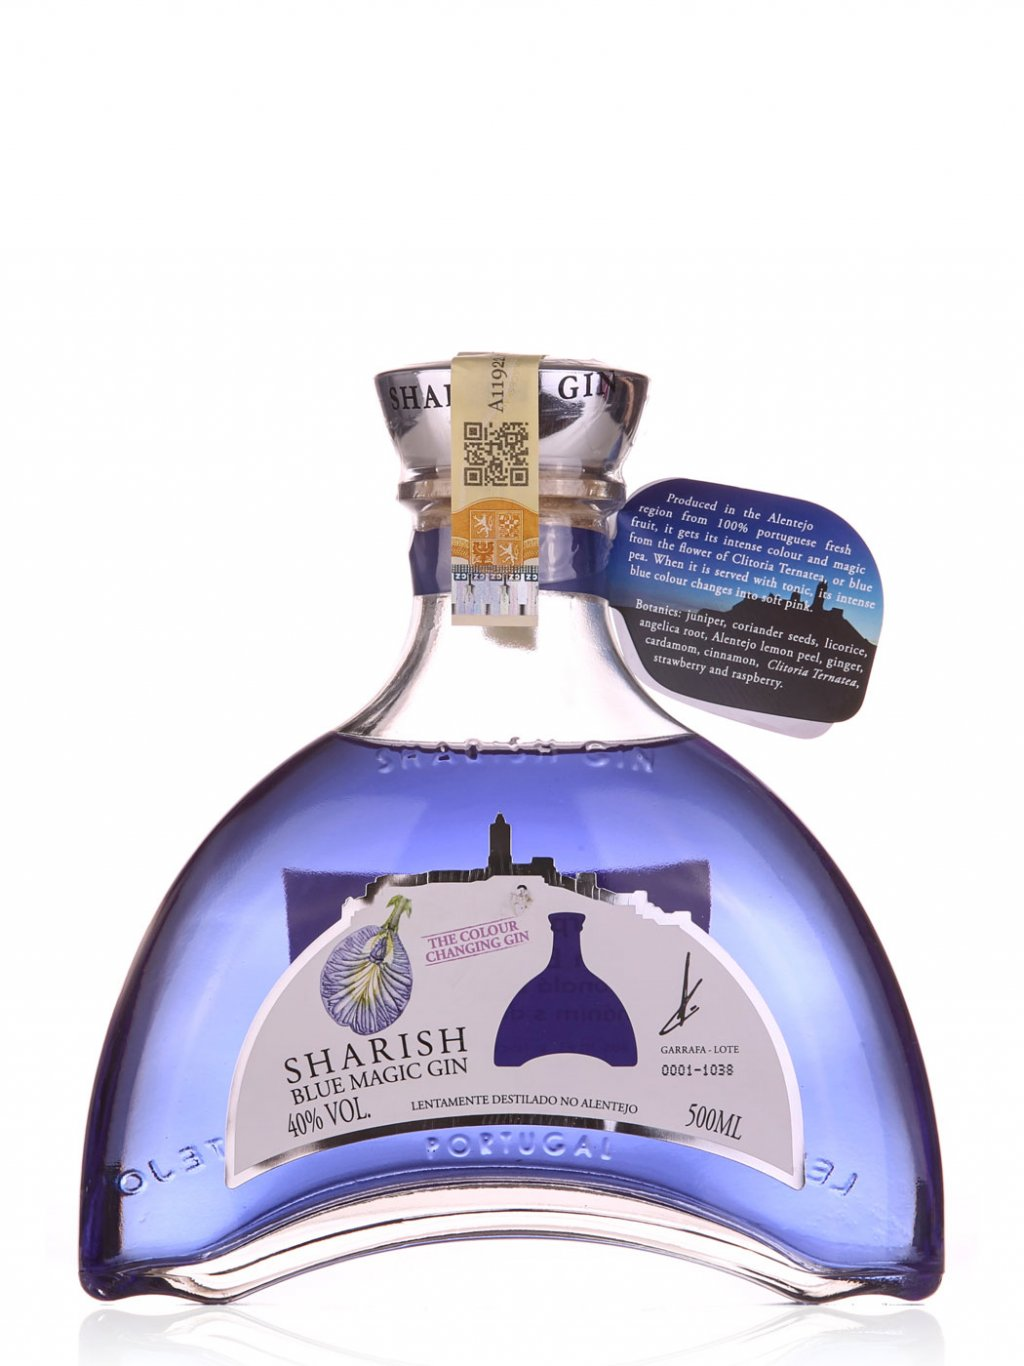 Sharish Blue Magic Gin 500ml